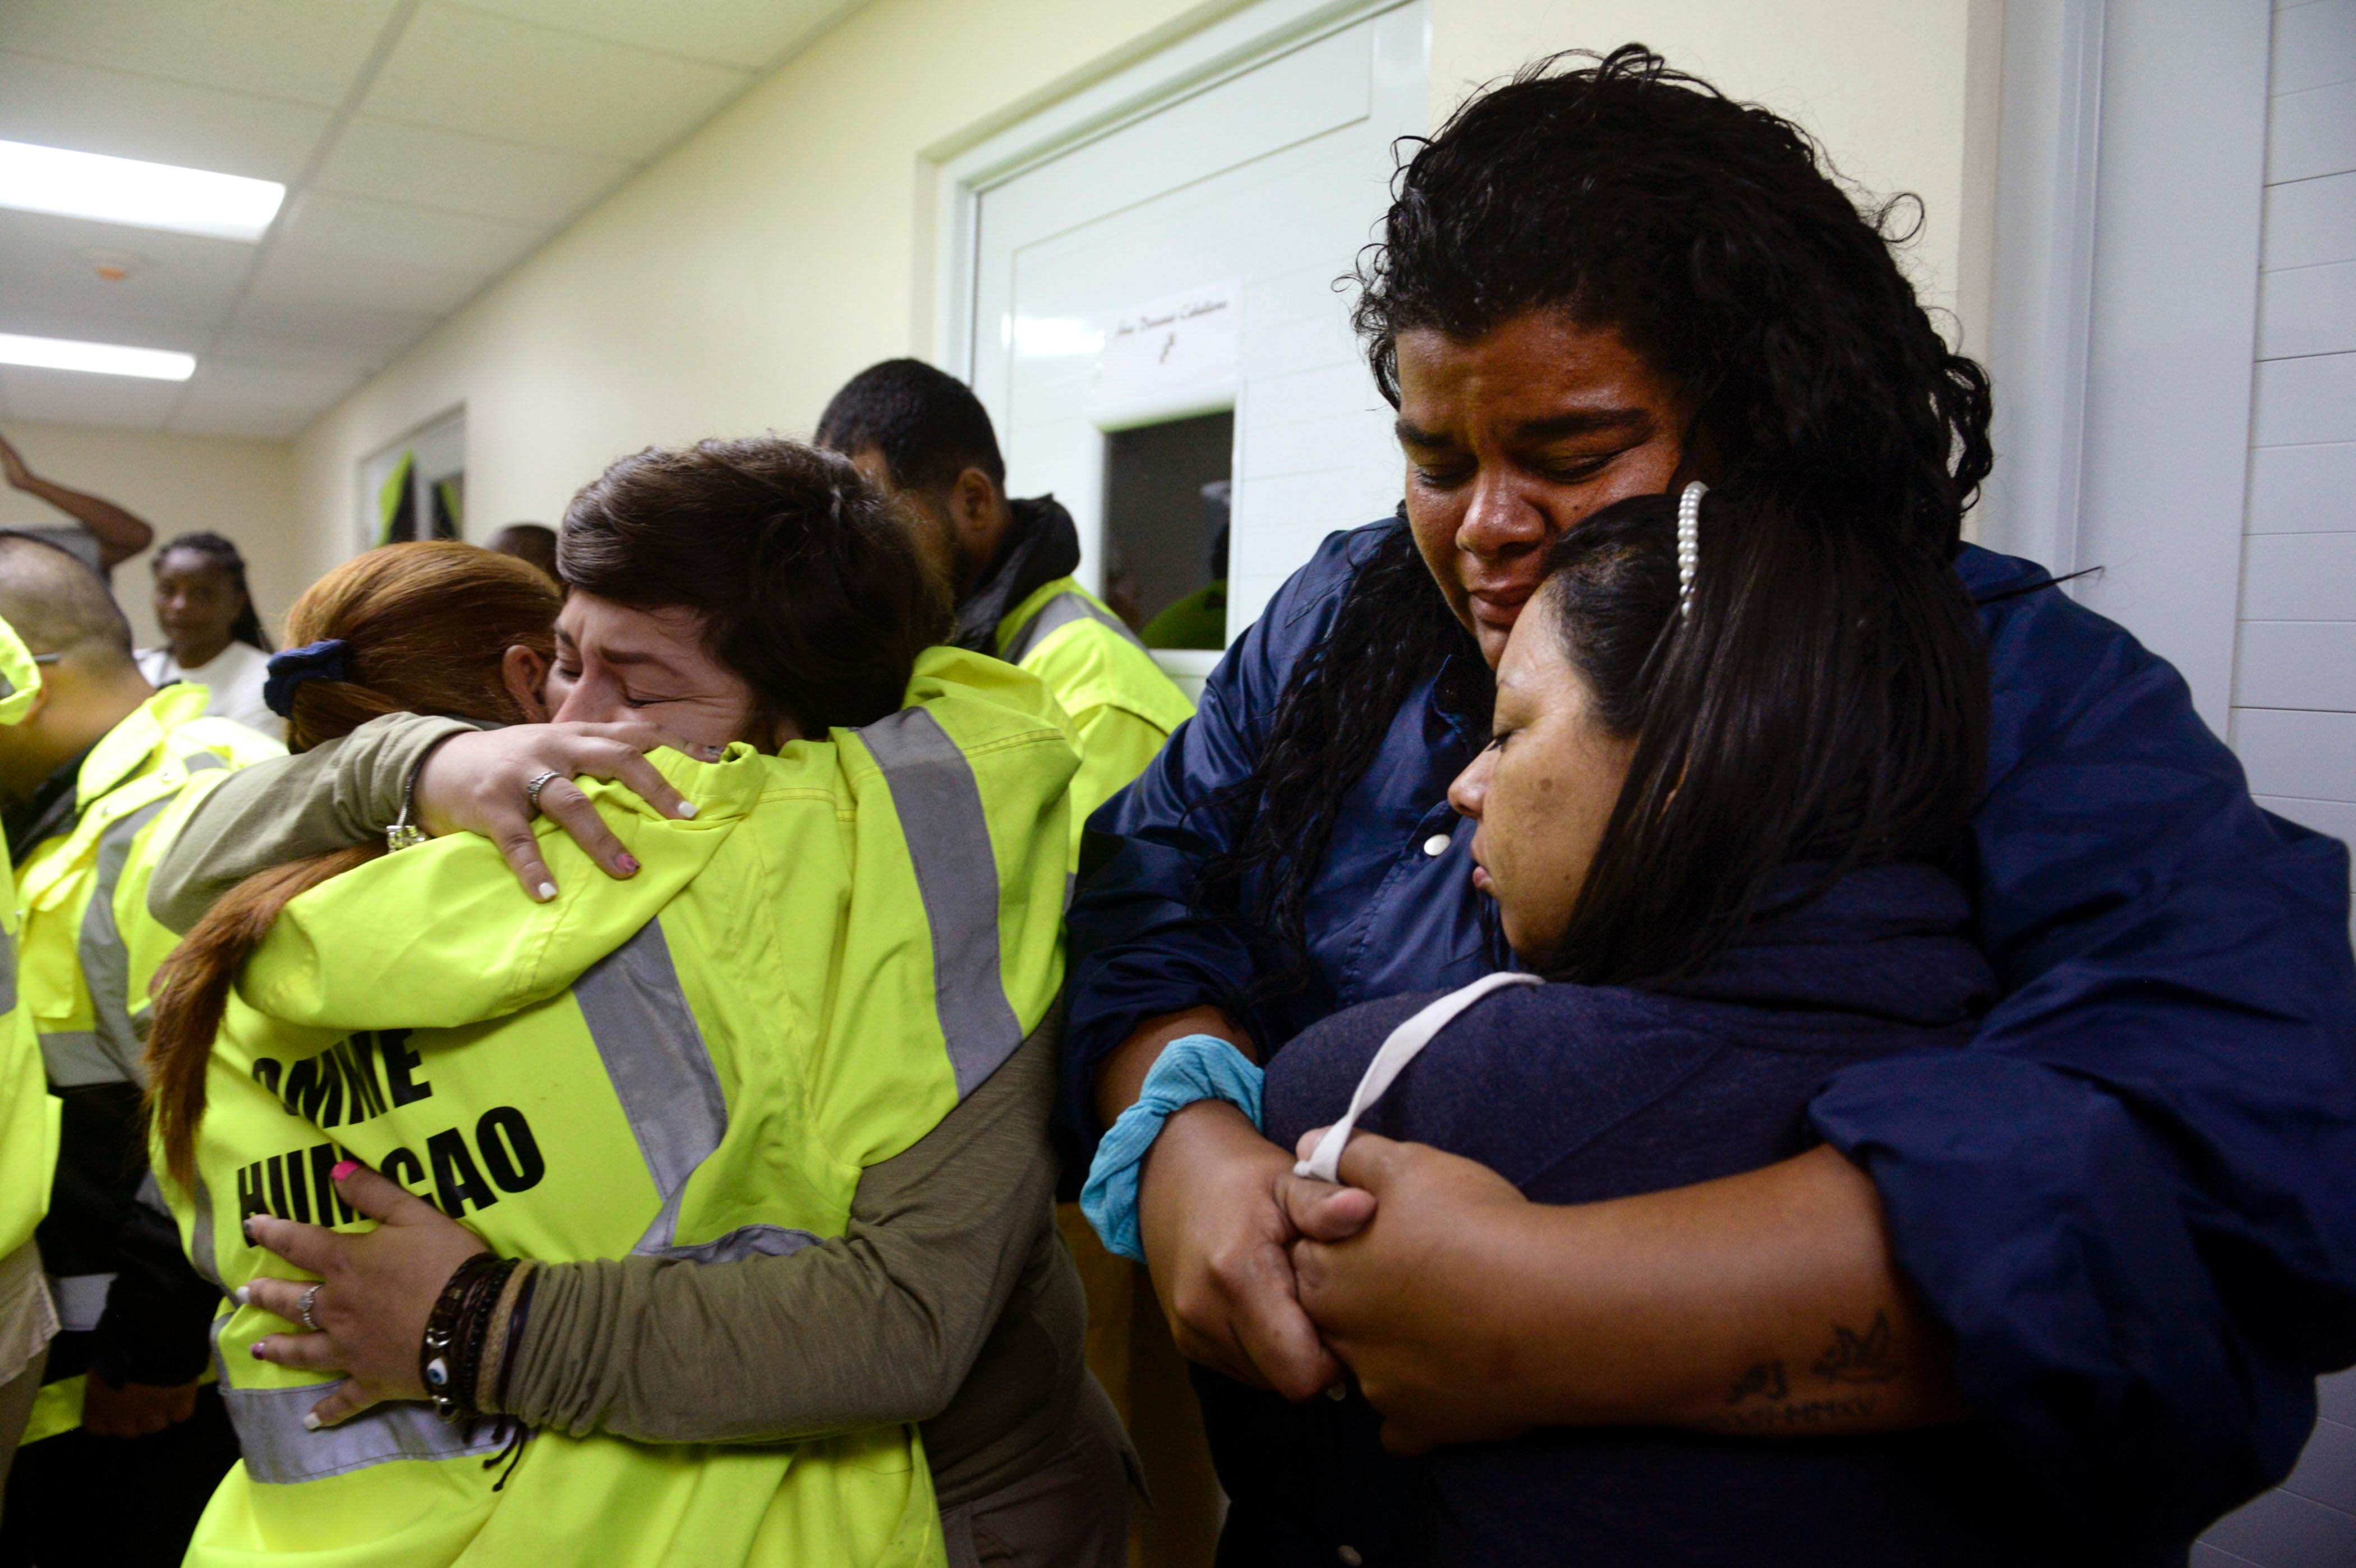 In this Sept. 20, 2017 photo, rescue team members Candida Lozada, left, and Stephanie Rivera, second from left, Mary Rodriguez, second from right, and Zuly Ruiz, right, embrace as they wait to assist in the aftermath of Hurricane Maria in Humacao, Puerto Rico. (AP Photo/Carlos Giusti)